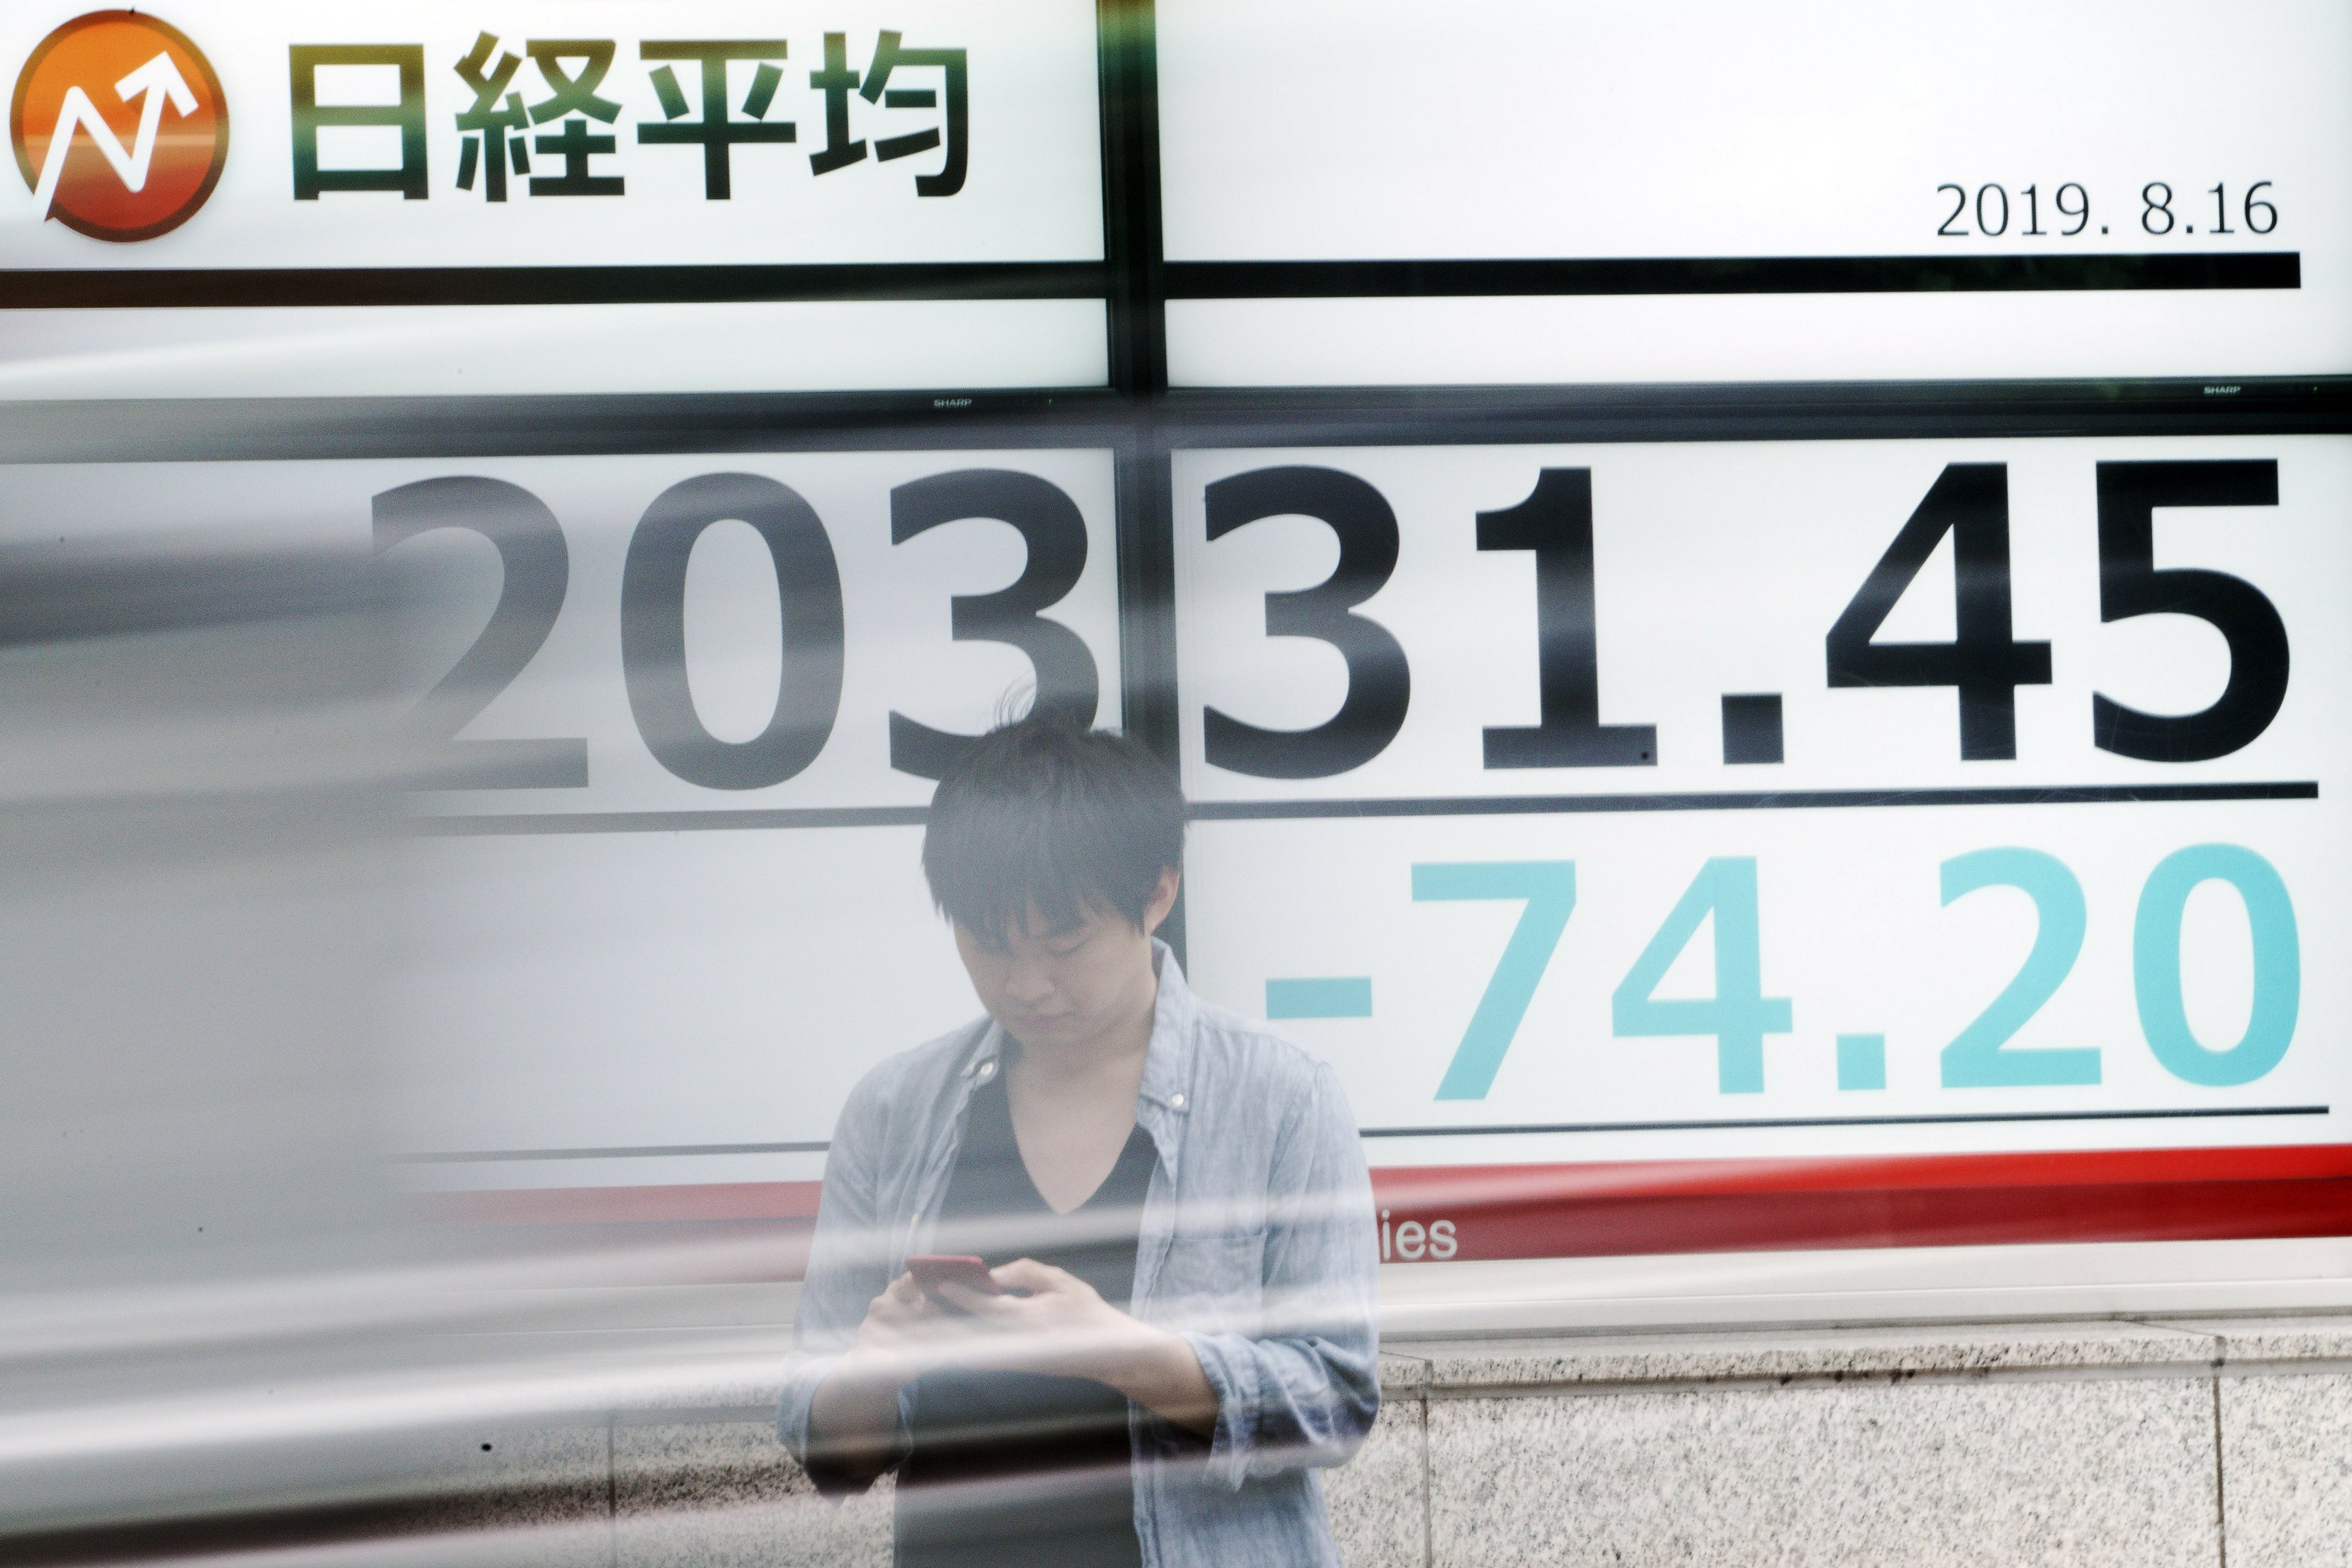 Global stocks recover some ground at end of turbulent week